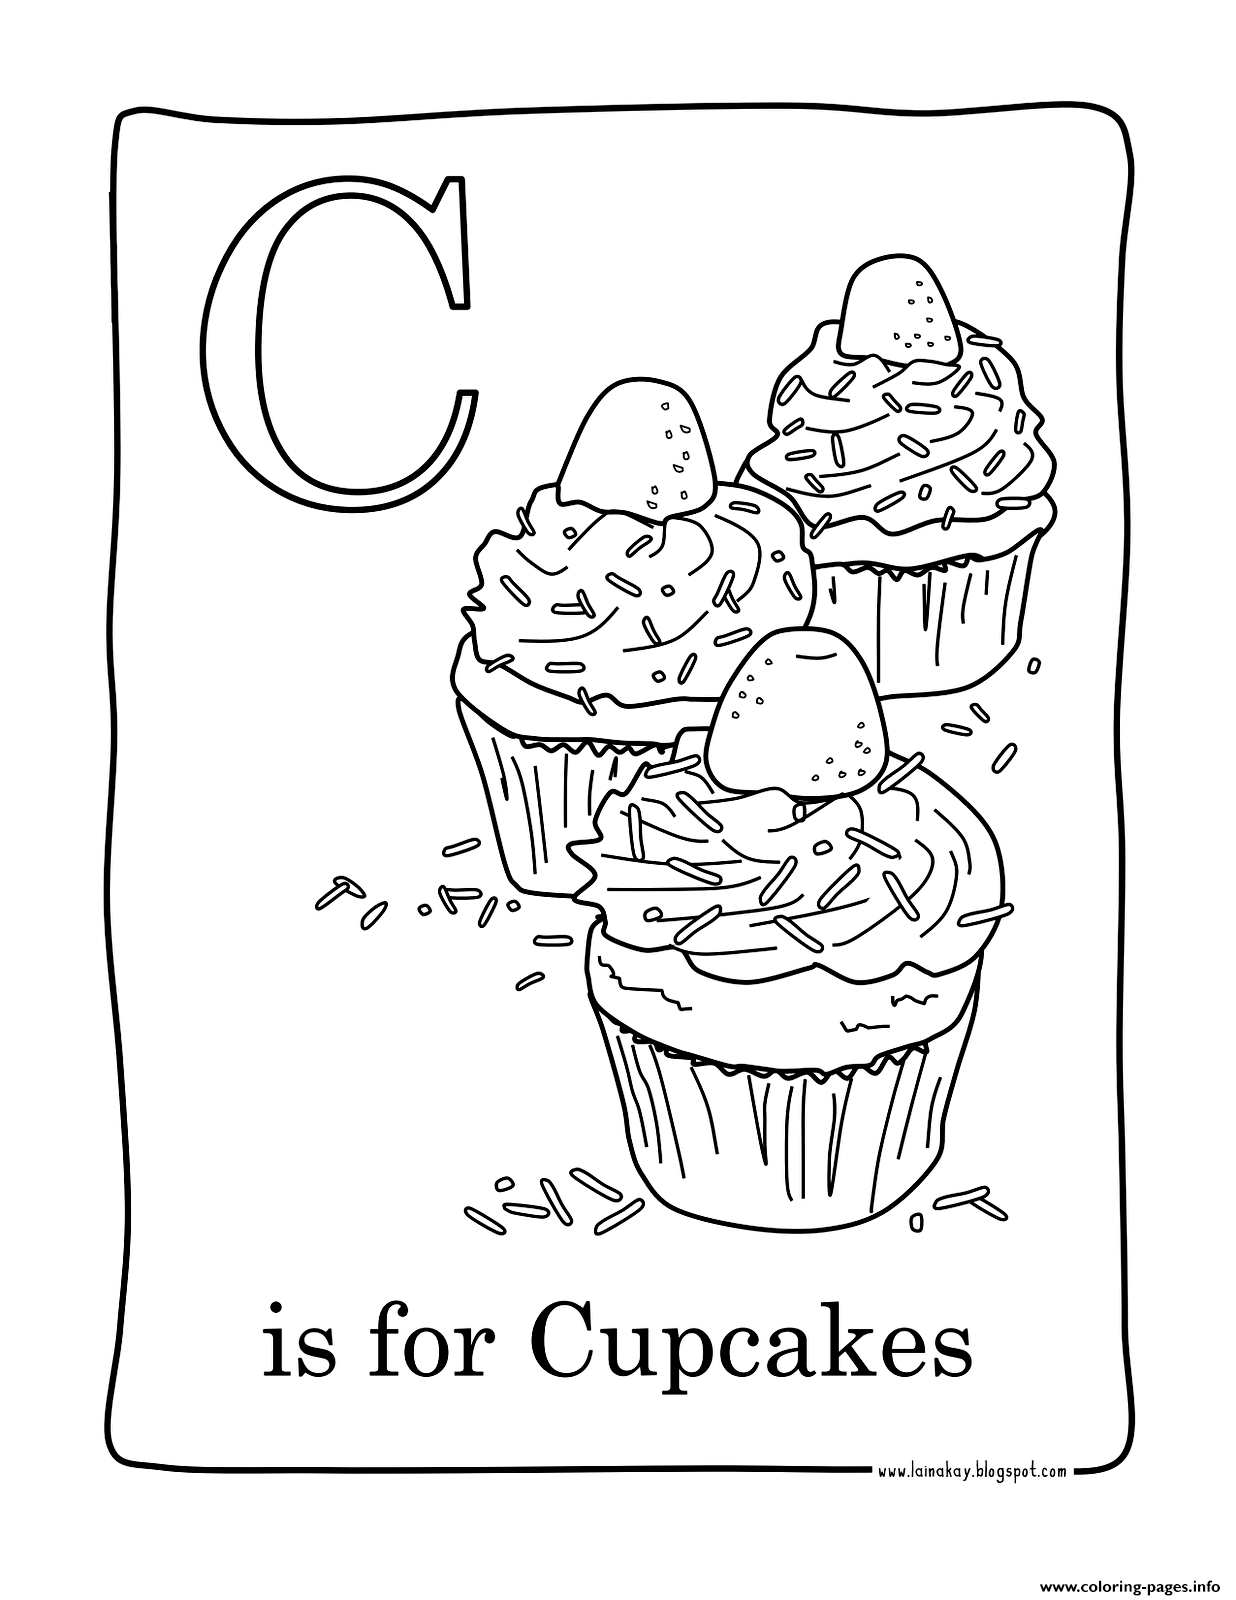 Facile Cupcakes Coloring Pages Printable